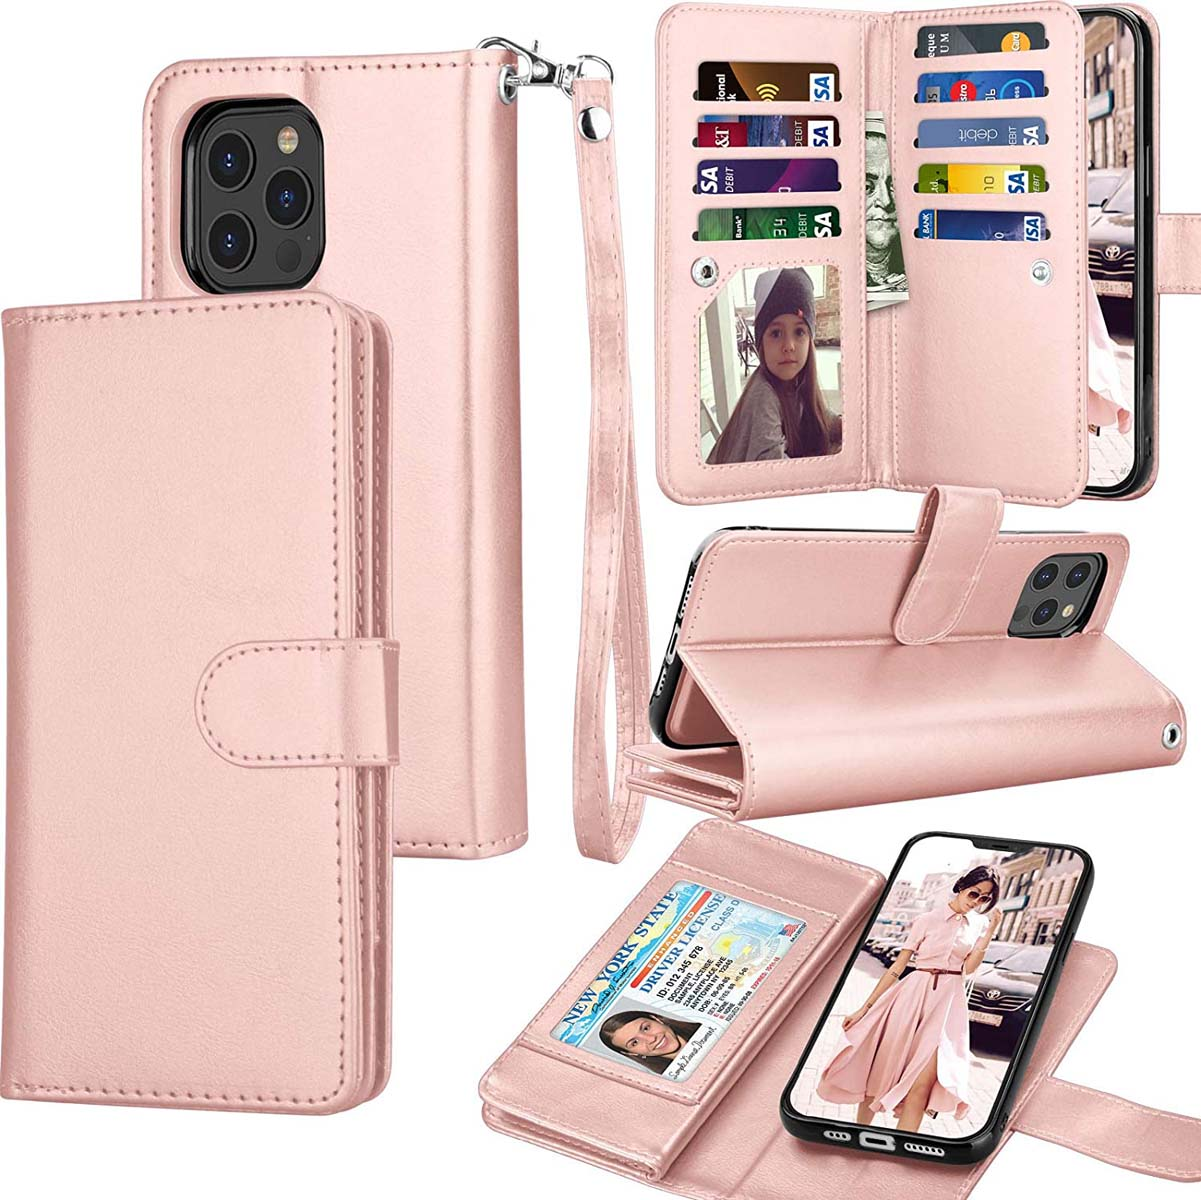 Kowauri for iPhone 12//iPhone 12 Pro Case,PU Leather Wallet Case with Credit Card Slot Holder Ultra Slim Protector Case for iPhone 12//iPhone 12 Pro 6.1 inch 2020 Gray